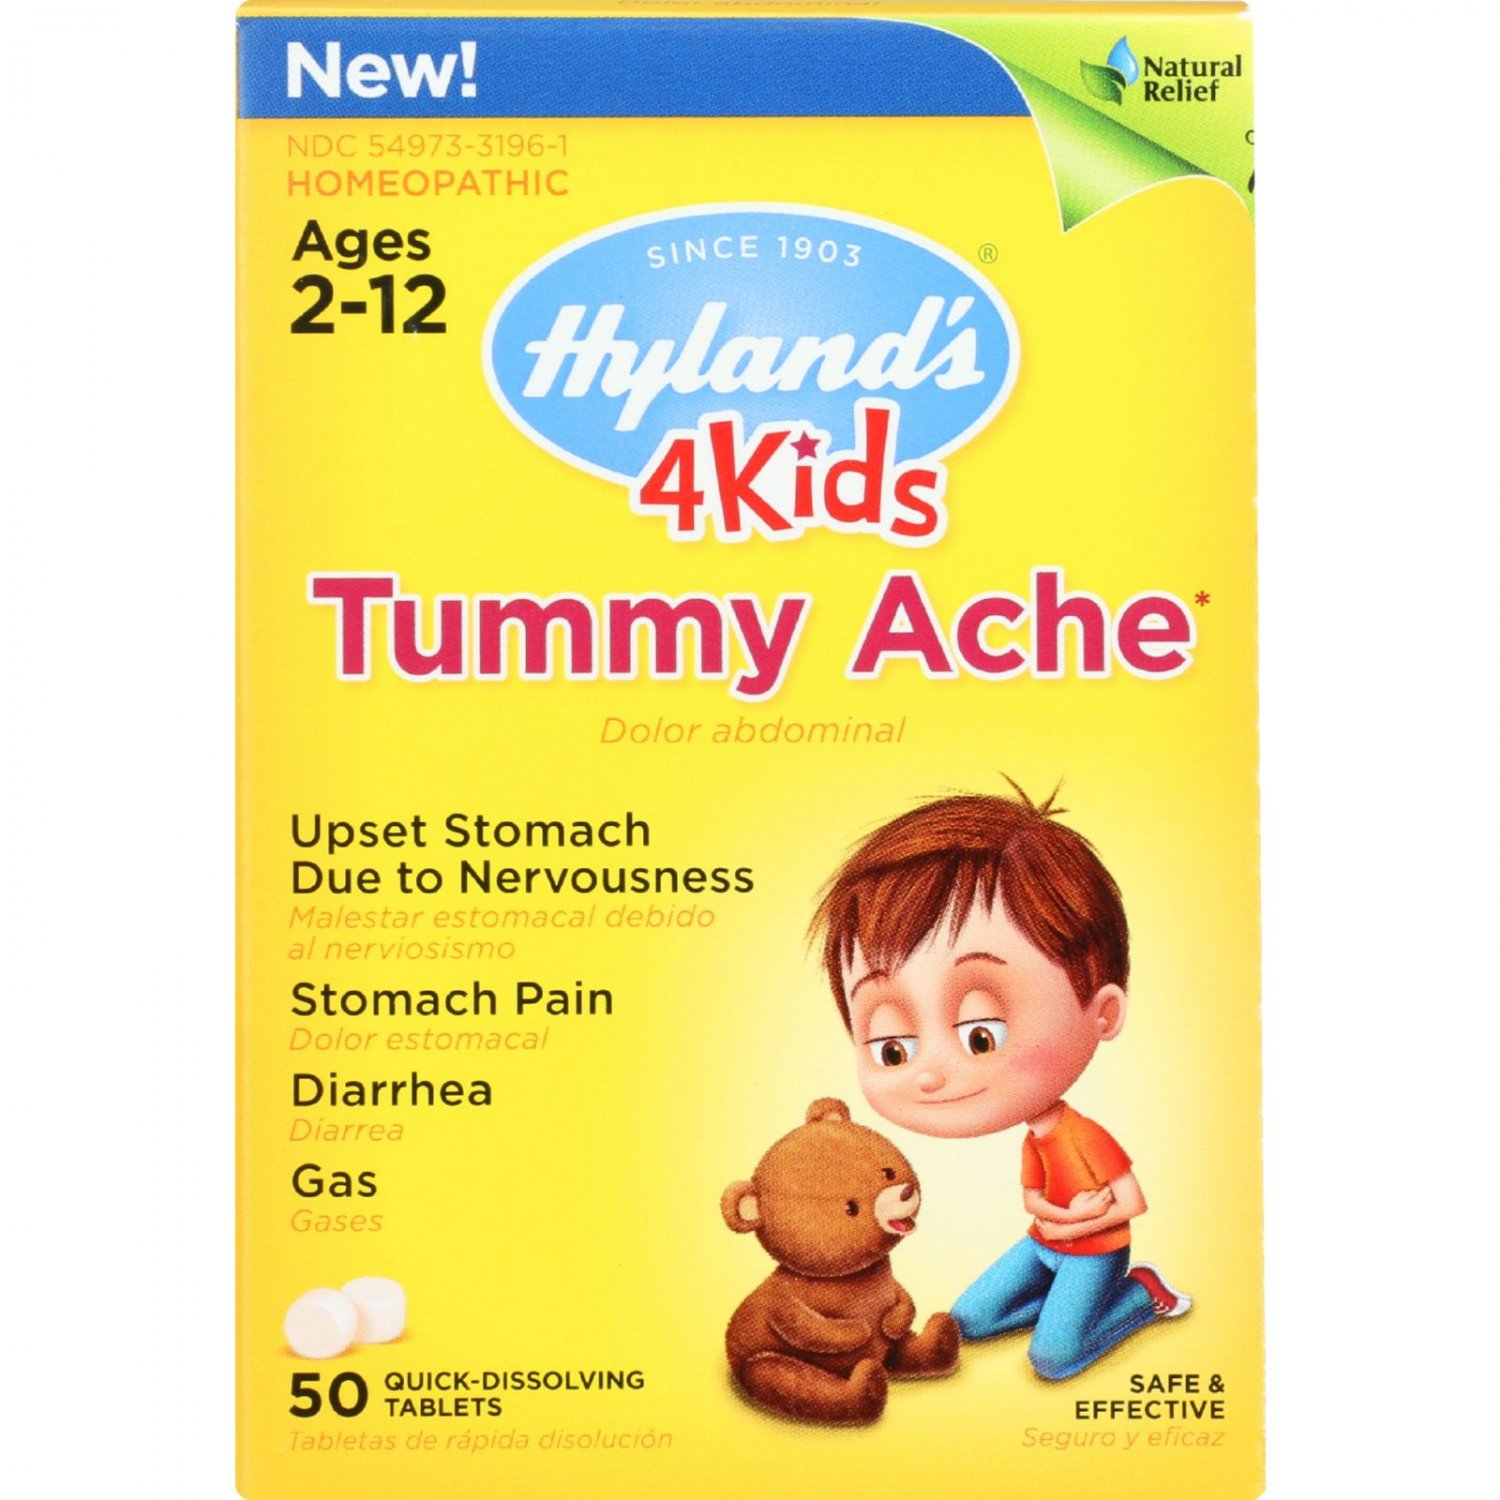 Hylands Homeopathic Tummy Ache - 4 Kids - 50 Quick-Dissolving Tablets